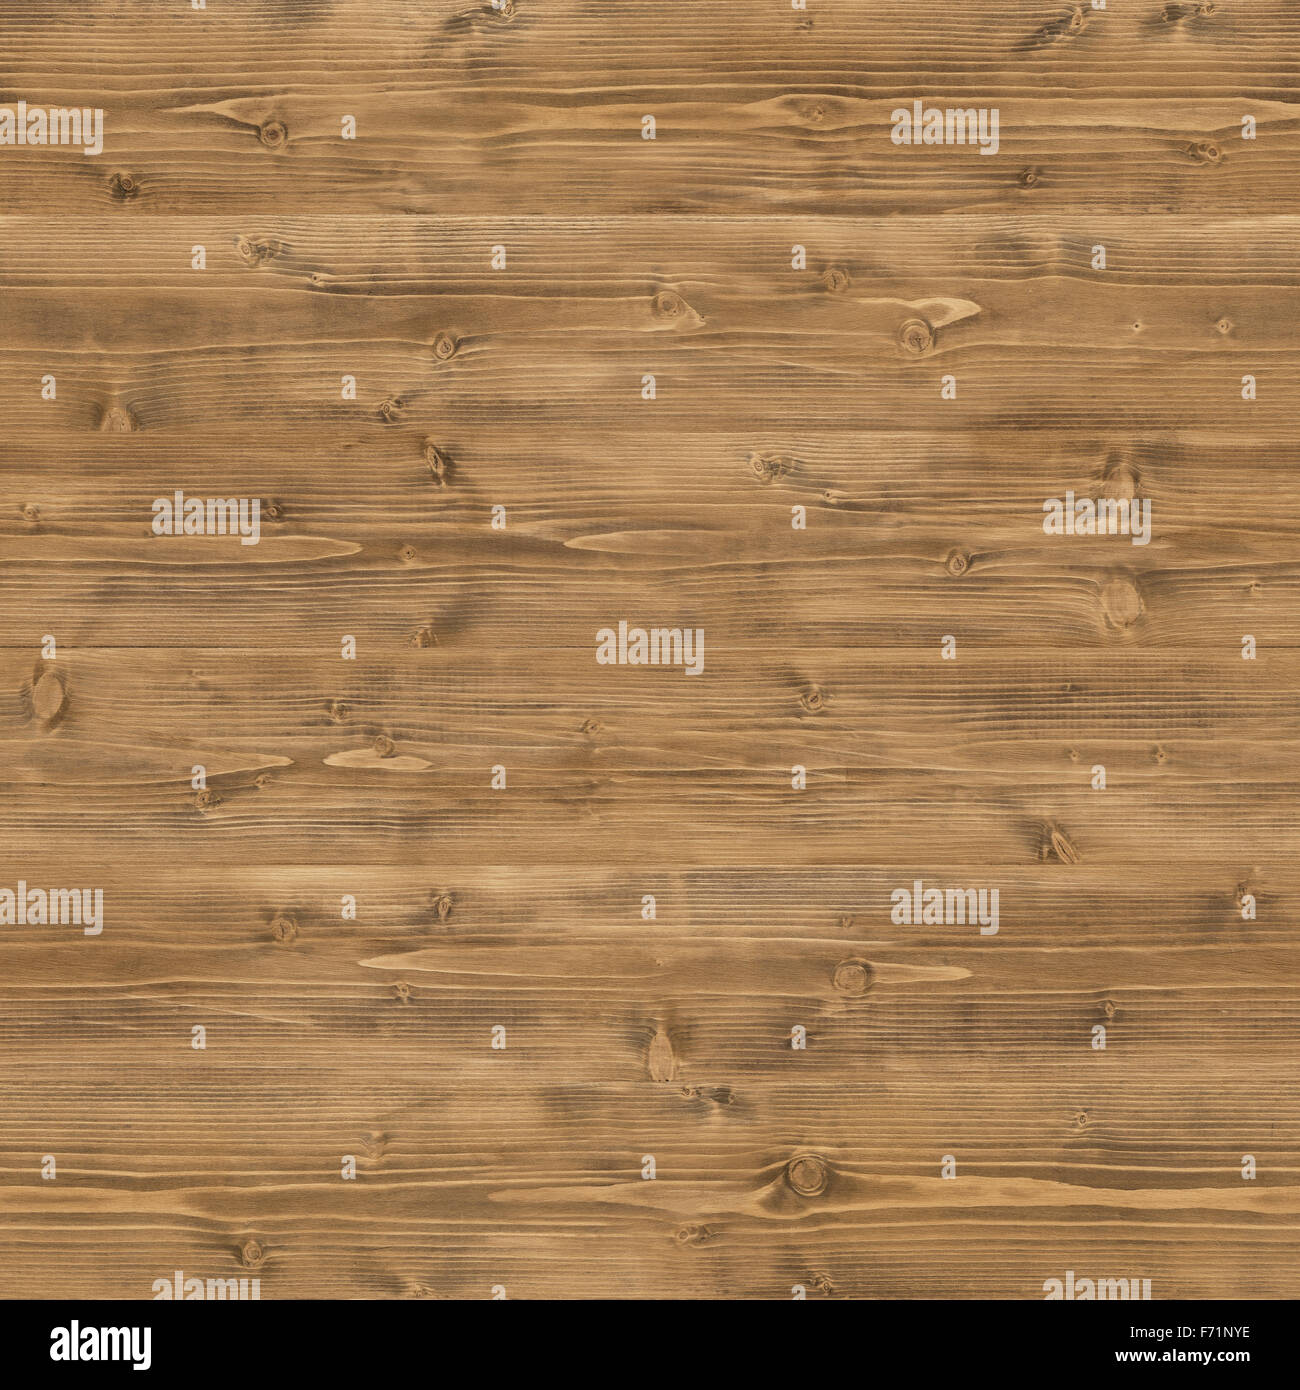 Seamless Rustic Brown Wood Texture Can Be Used As Floor